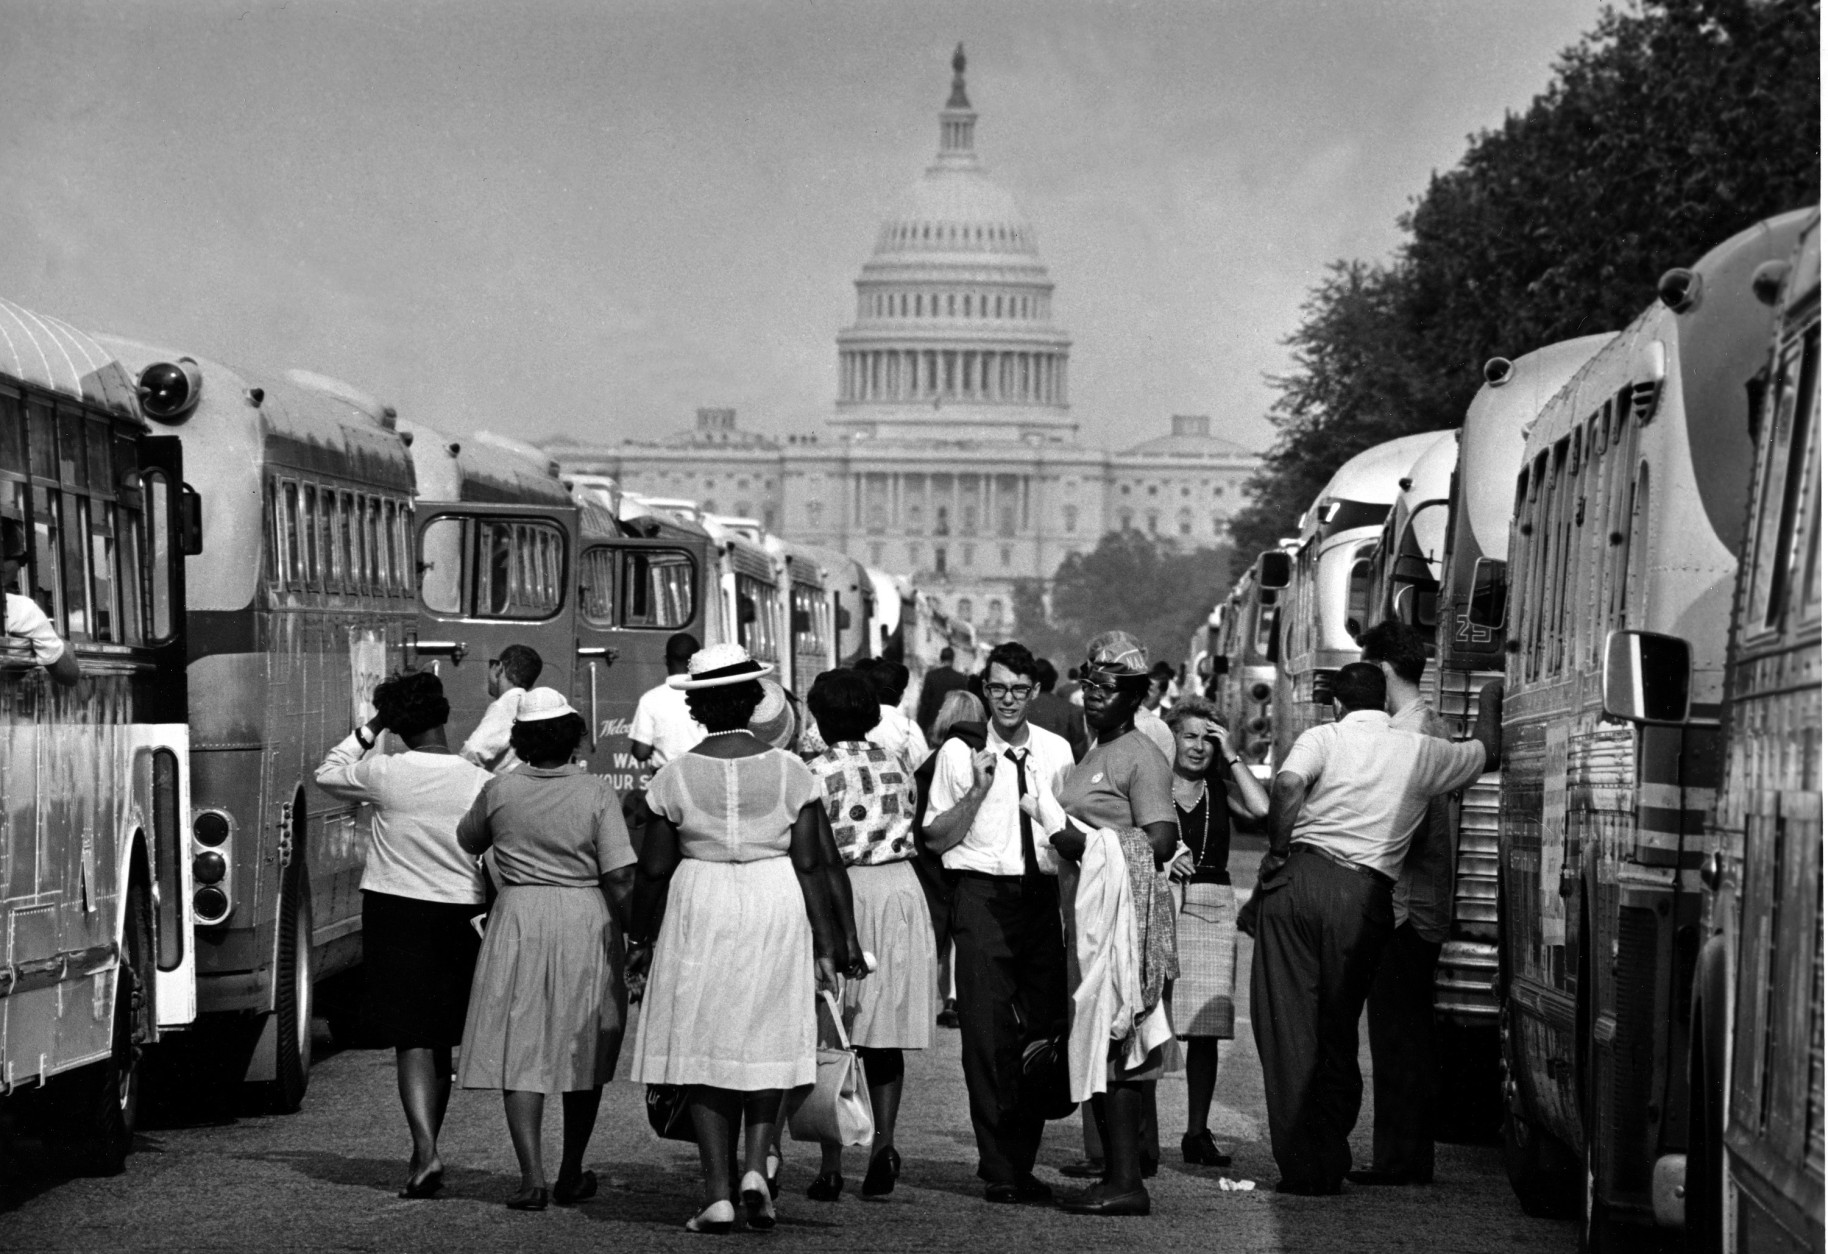 With the U.S. Capitol in the background, passengers for charter busses walk along a service roadway of the Mall in Washington, August 28, 1963, to find their transportation home after a civil rights demonstration estimated by police at more than 200,000 people.  (AP Photo)